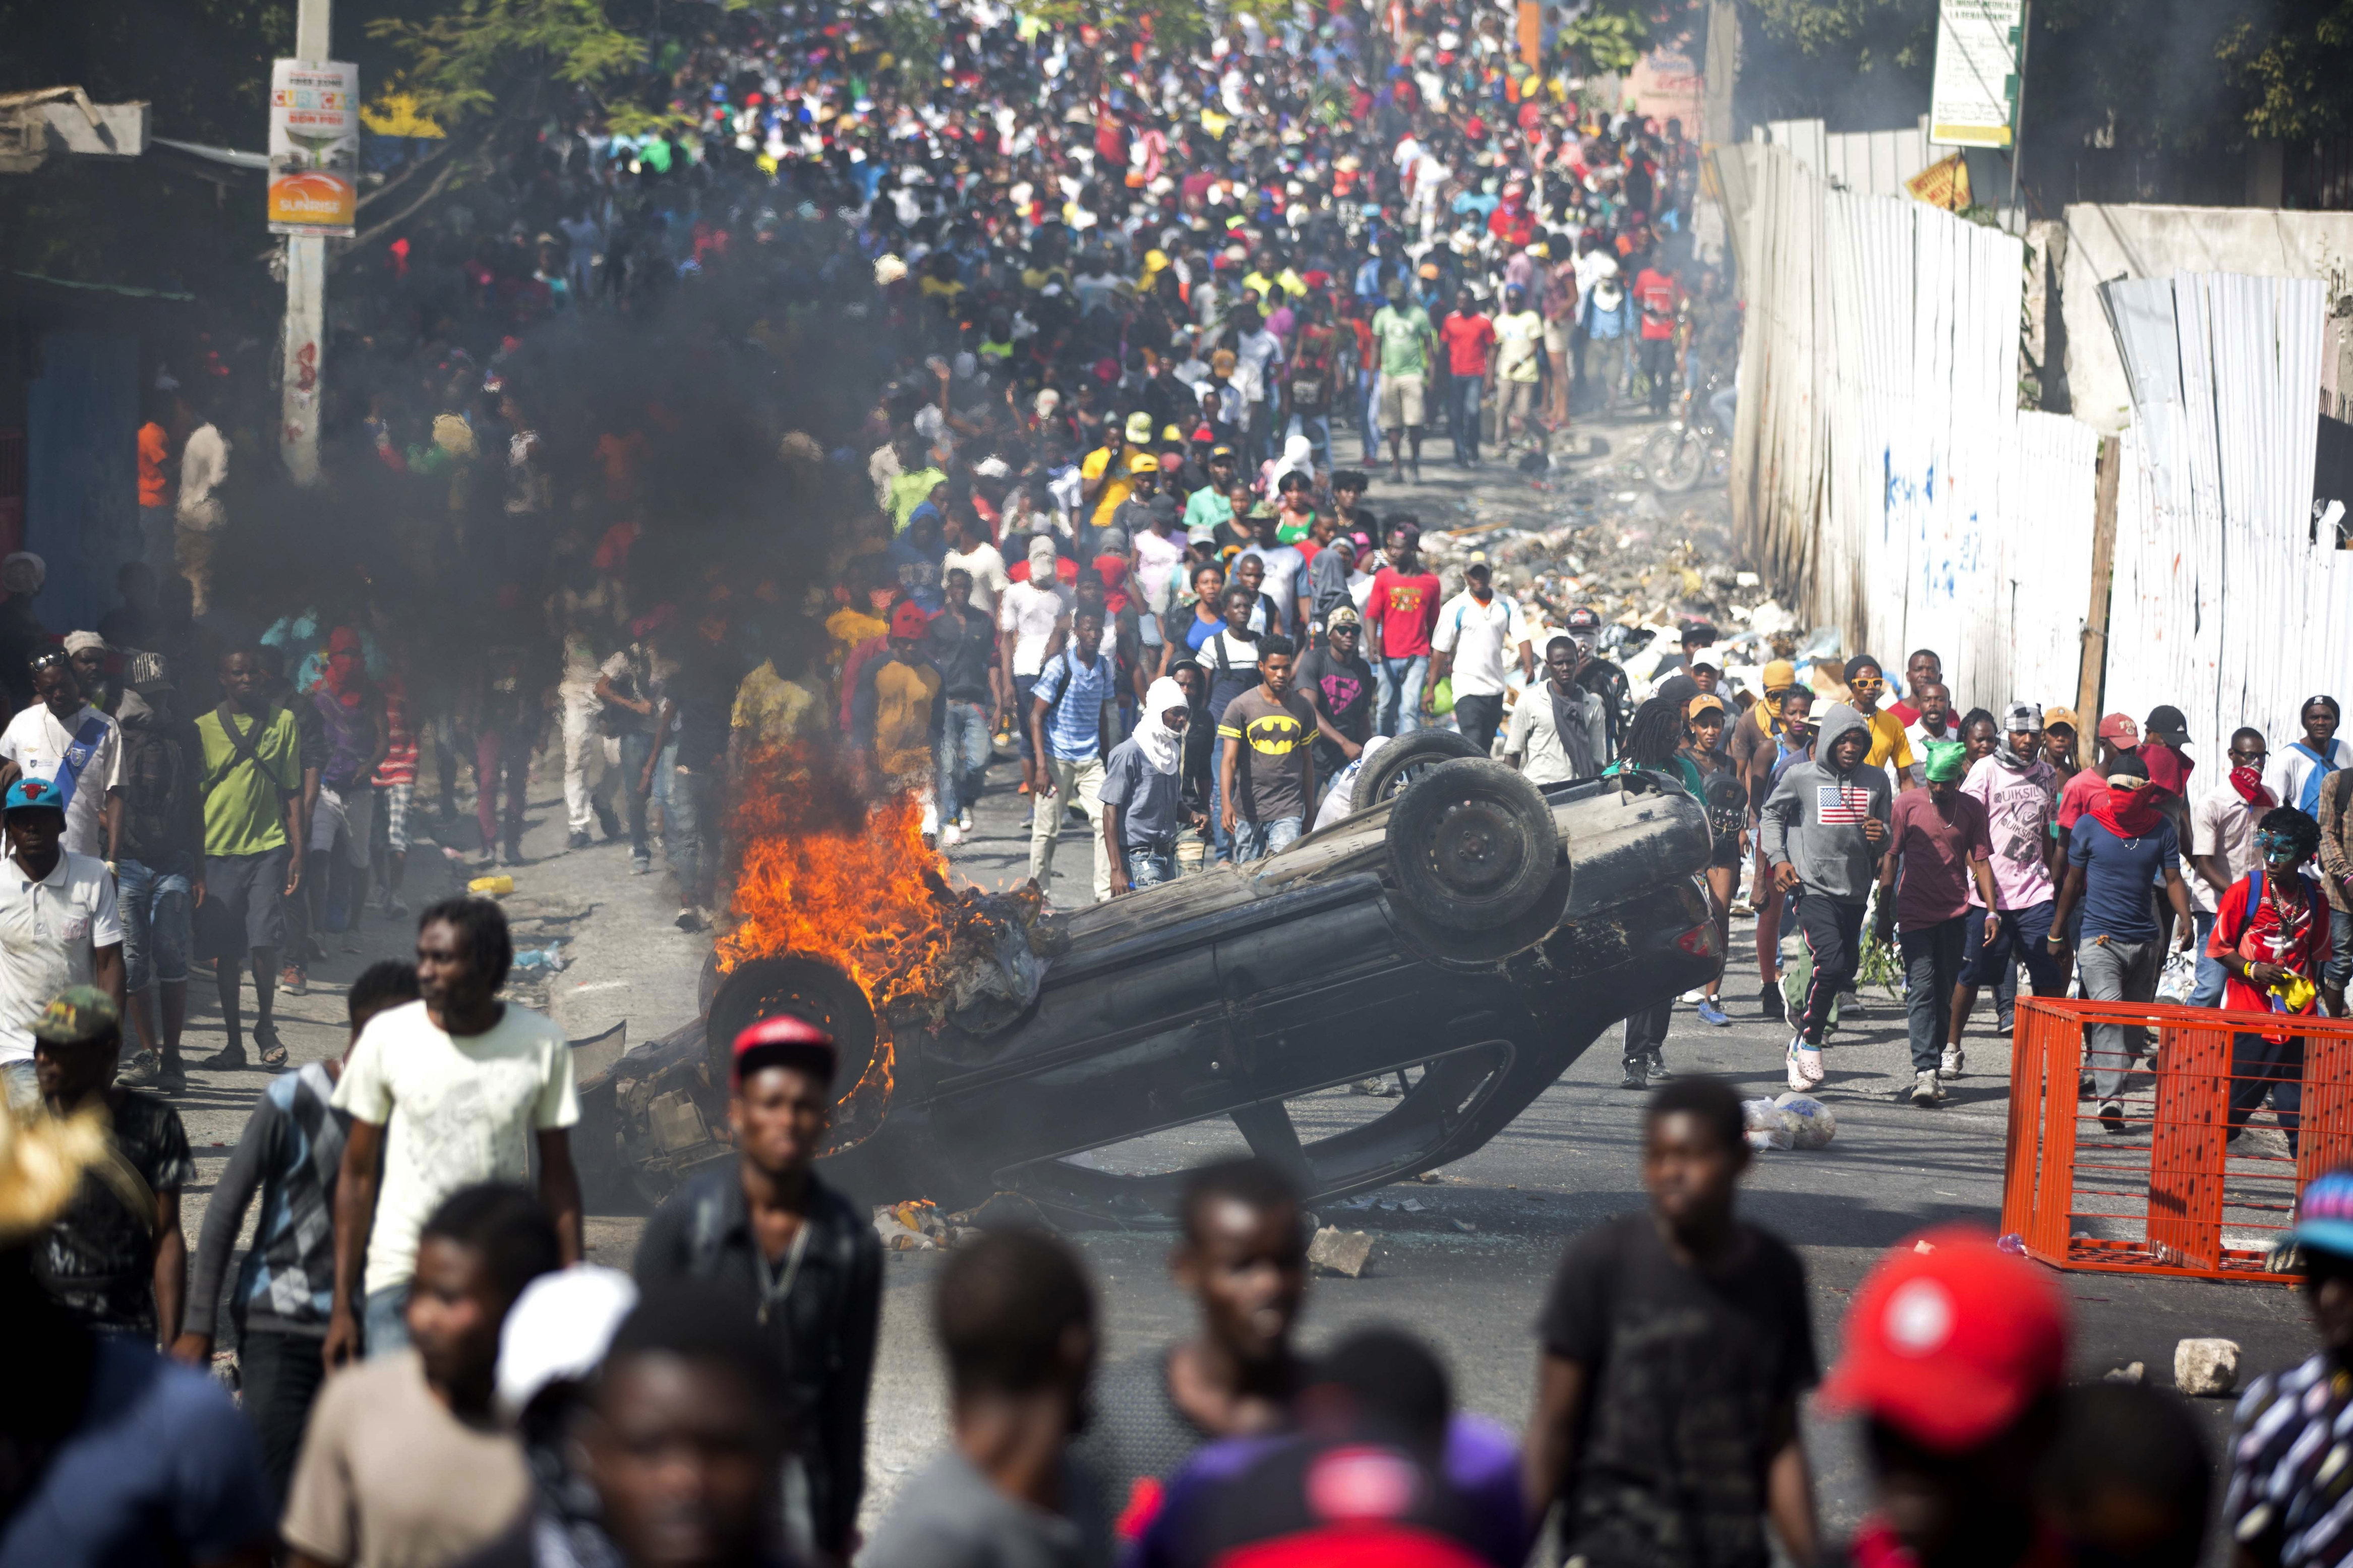 In this Feb. 12, 2019 file photo, an overturned car burns during a protest demanding the resignation of Haitian President Jovenel Moise in Port-au-Prince, Haiti.